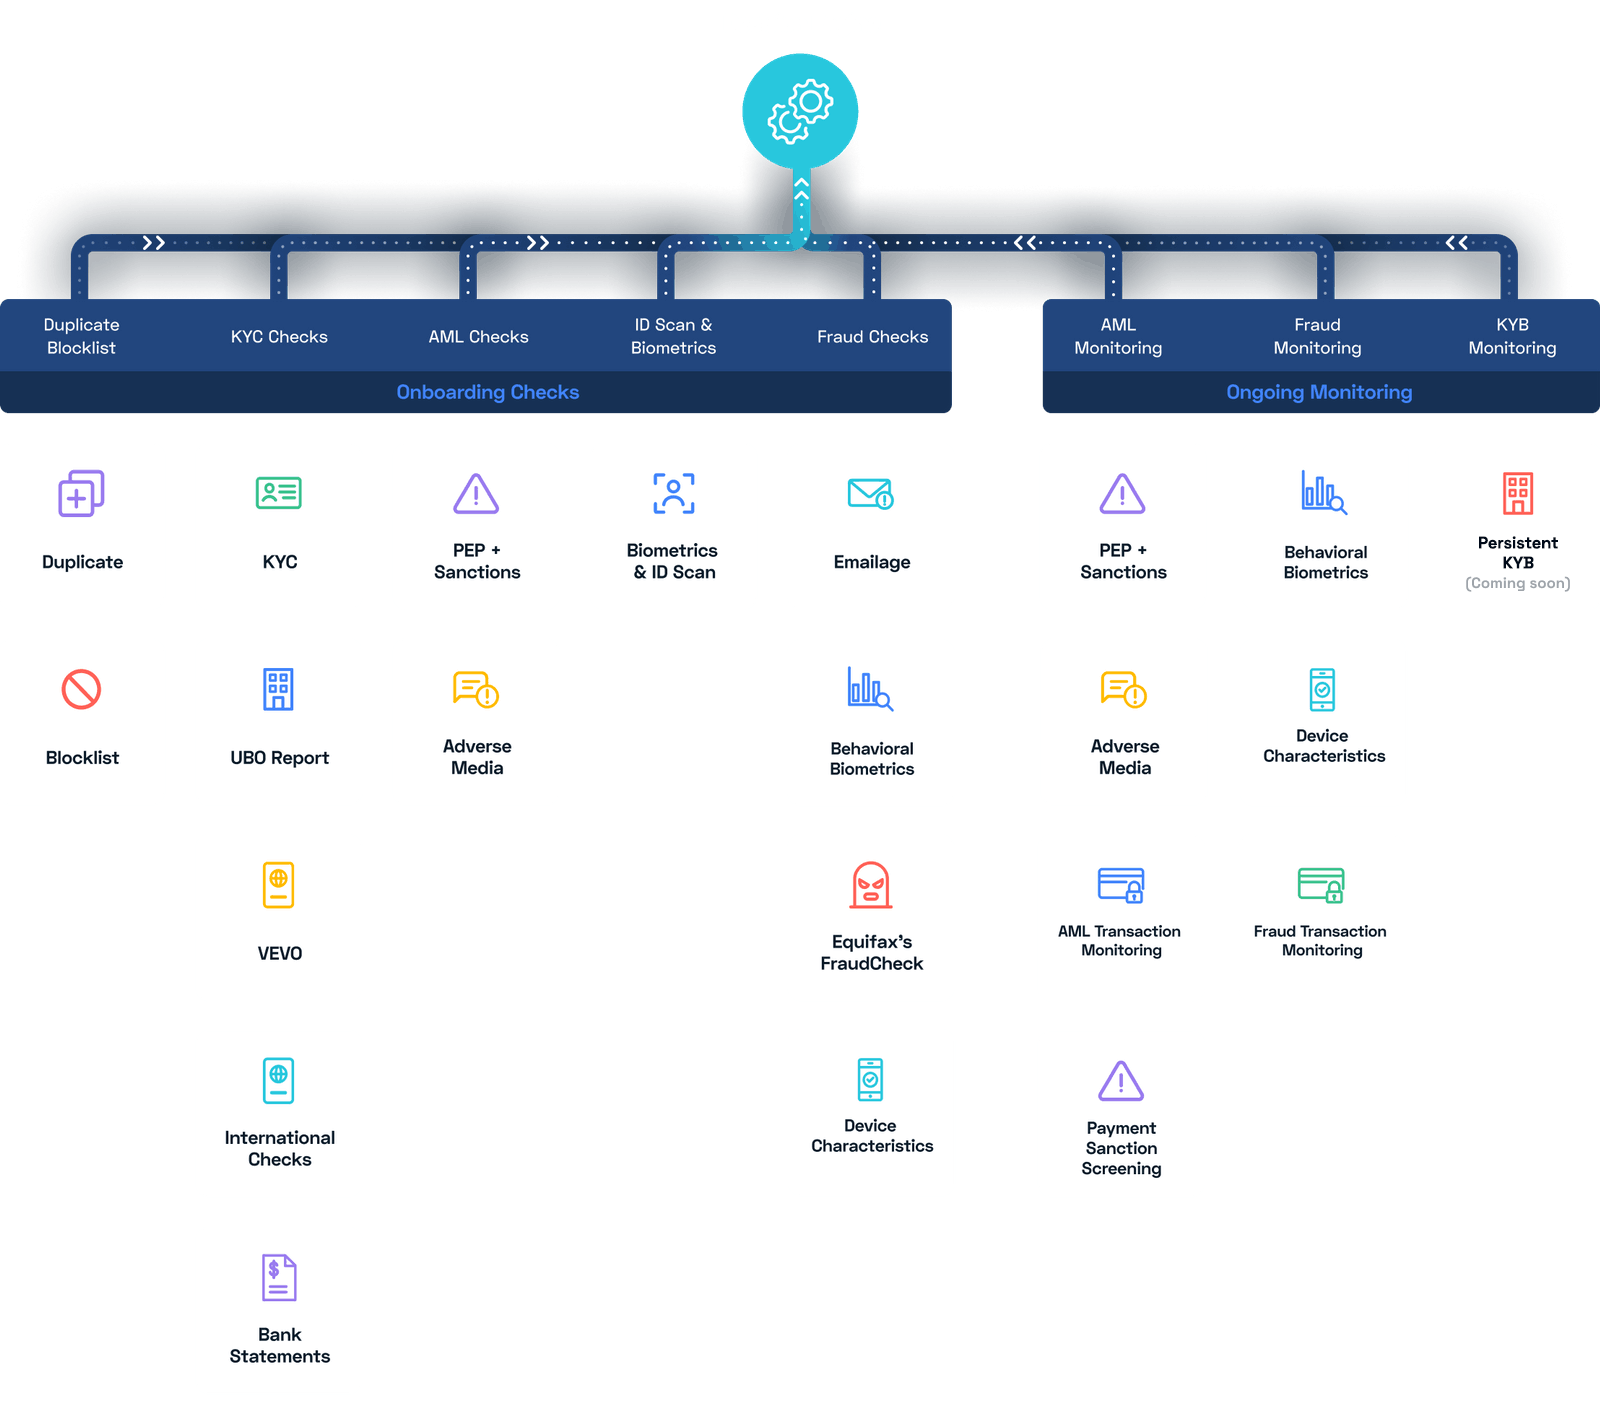 Image shows all of Frankie's check and monitoring modules leading into the decision engine